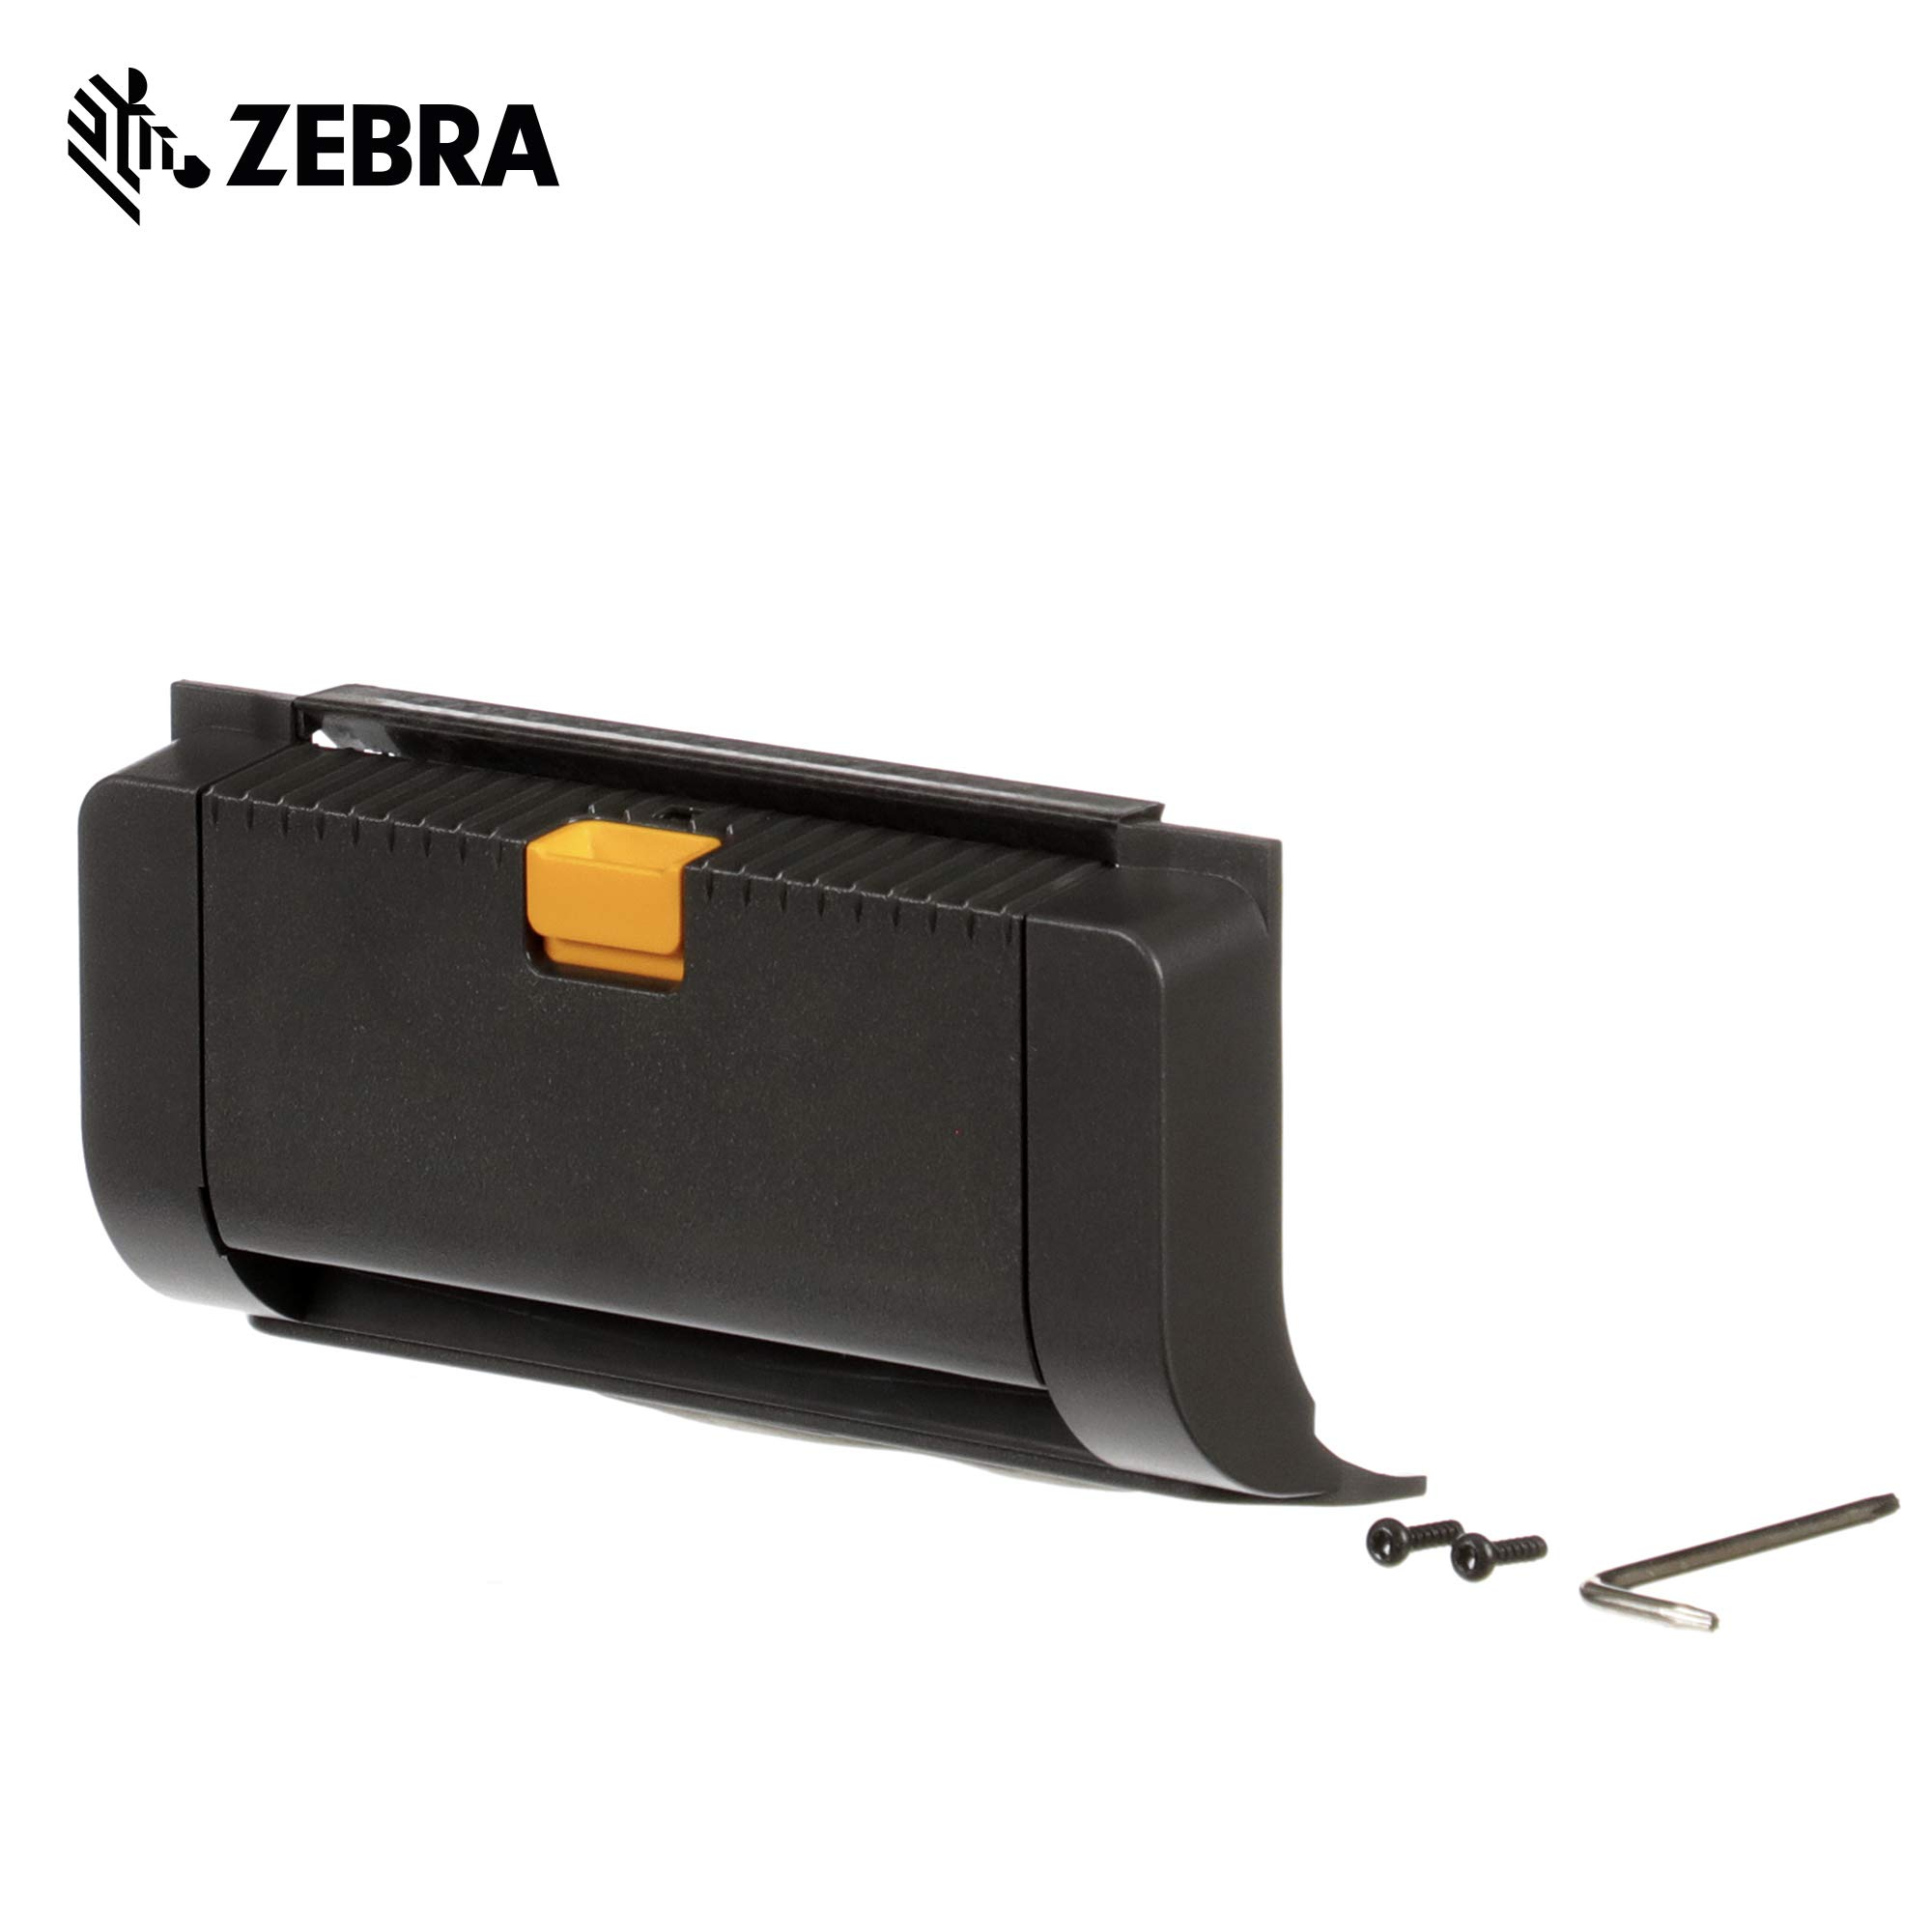 Zebra - Peeler Attachment for ZD420c, ZD420t, and ZD620t Thermal Transfer Desktop Printers - Field Installable by ZEBRA